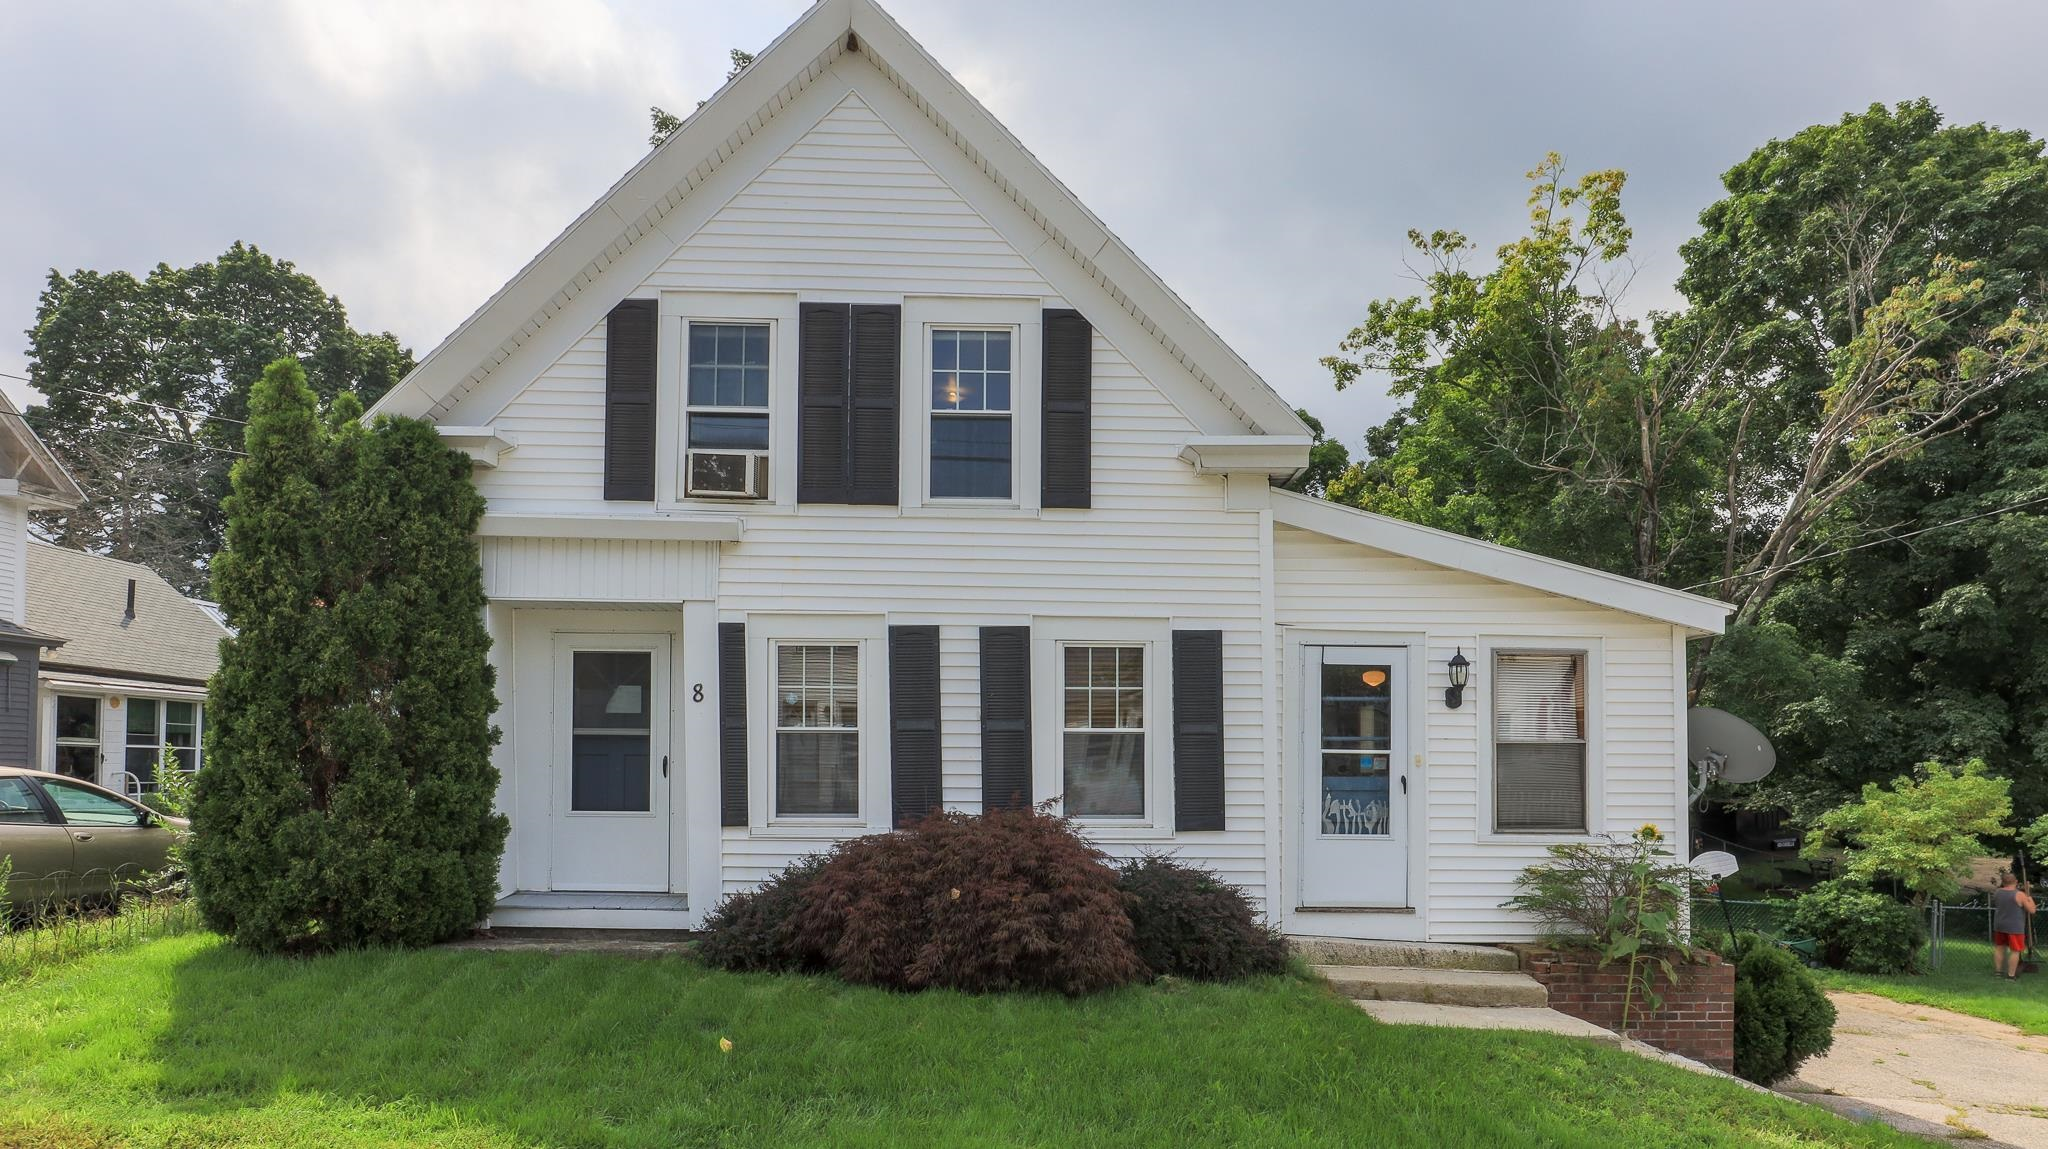 8 Old Manchester Road, Raymond, NH 03077